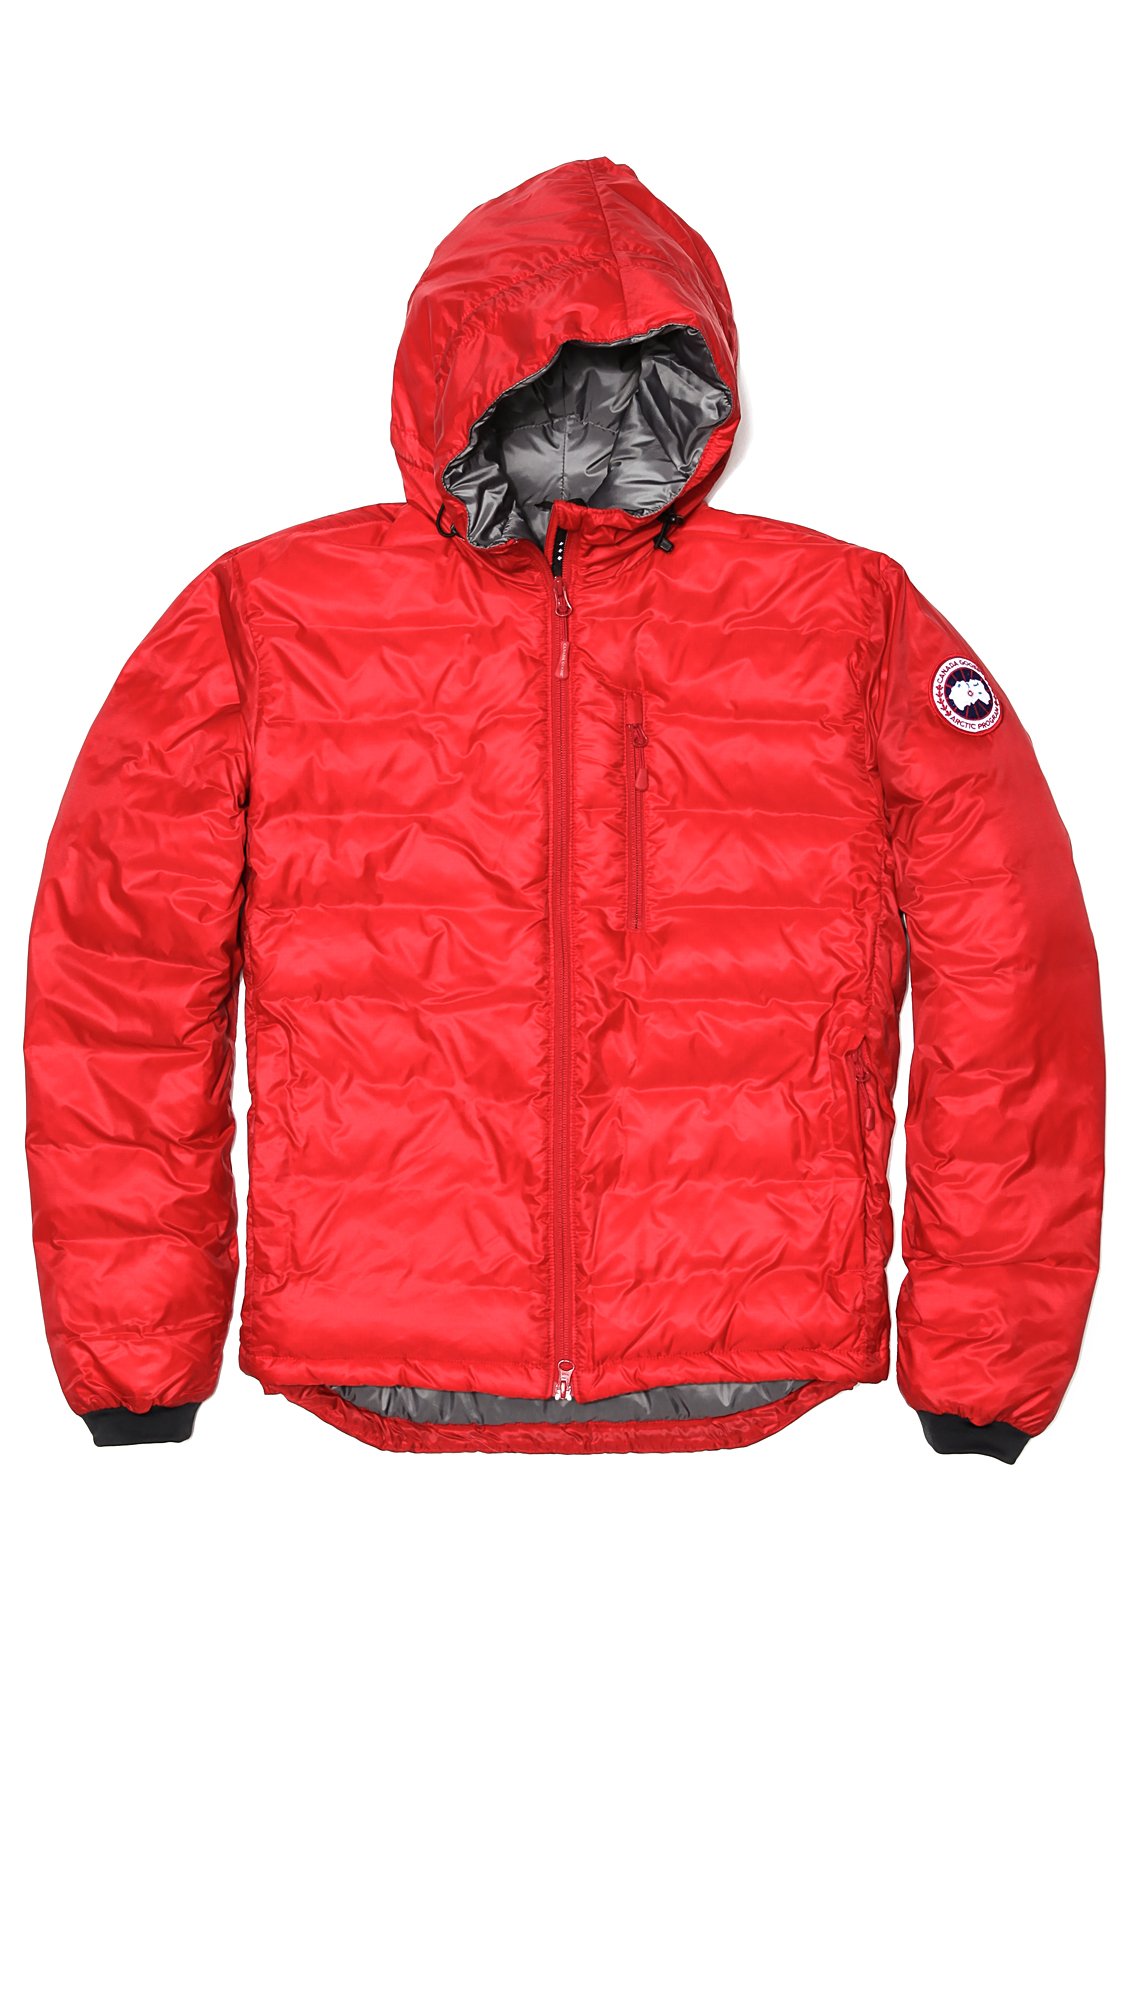 Canada goose lodge hoodie jacket in red for men lyst for Canada goose t shirt